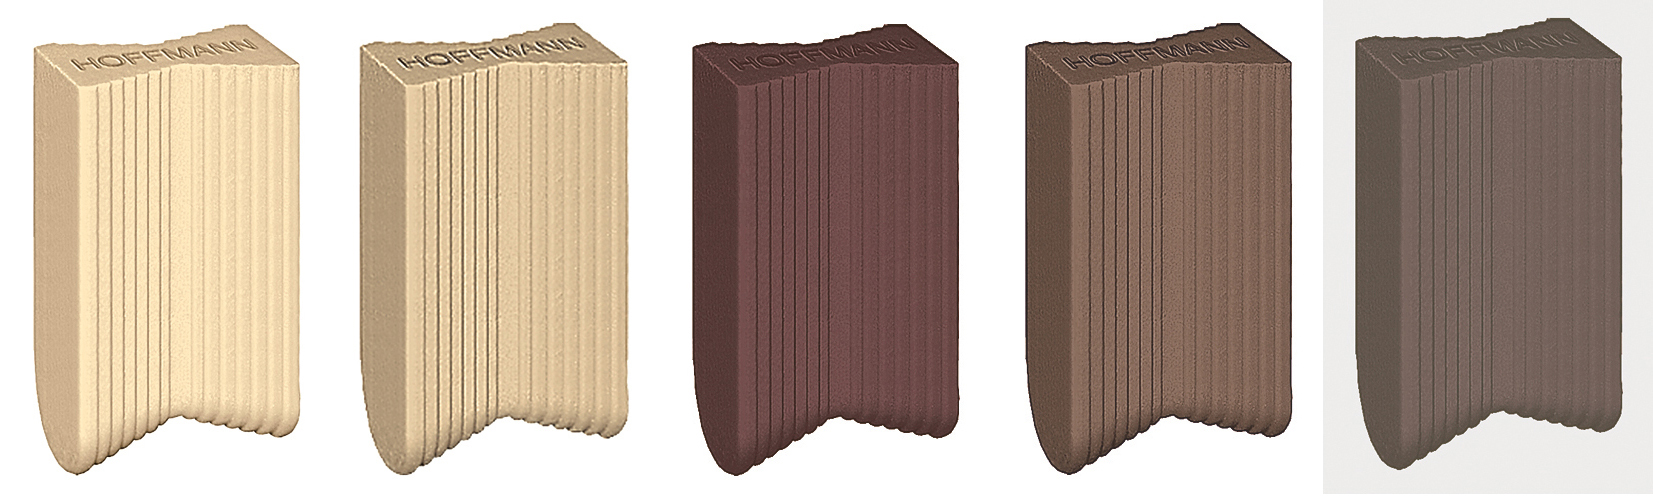 hoffmann-wood-match-color-plastic-dovetail-keys.jpg